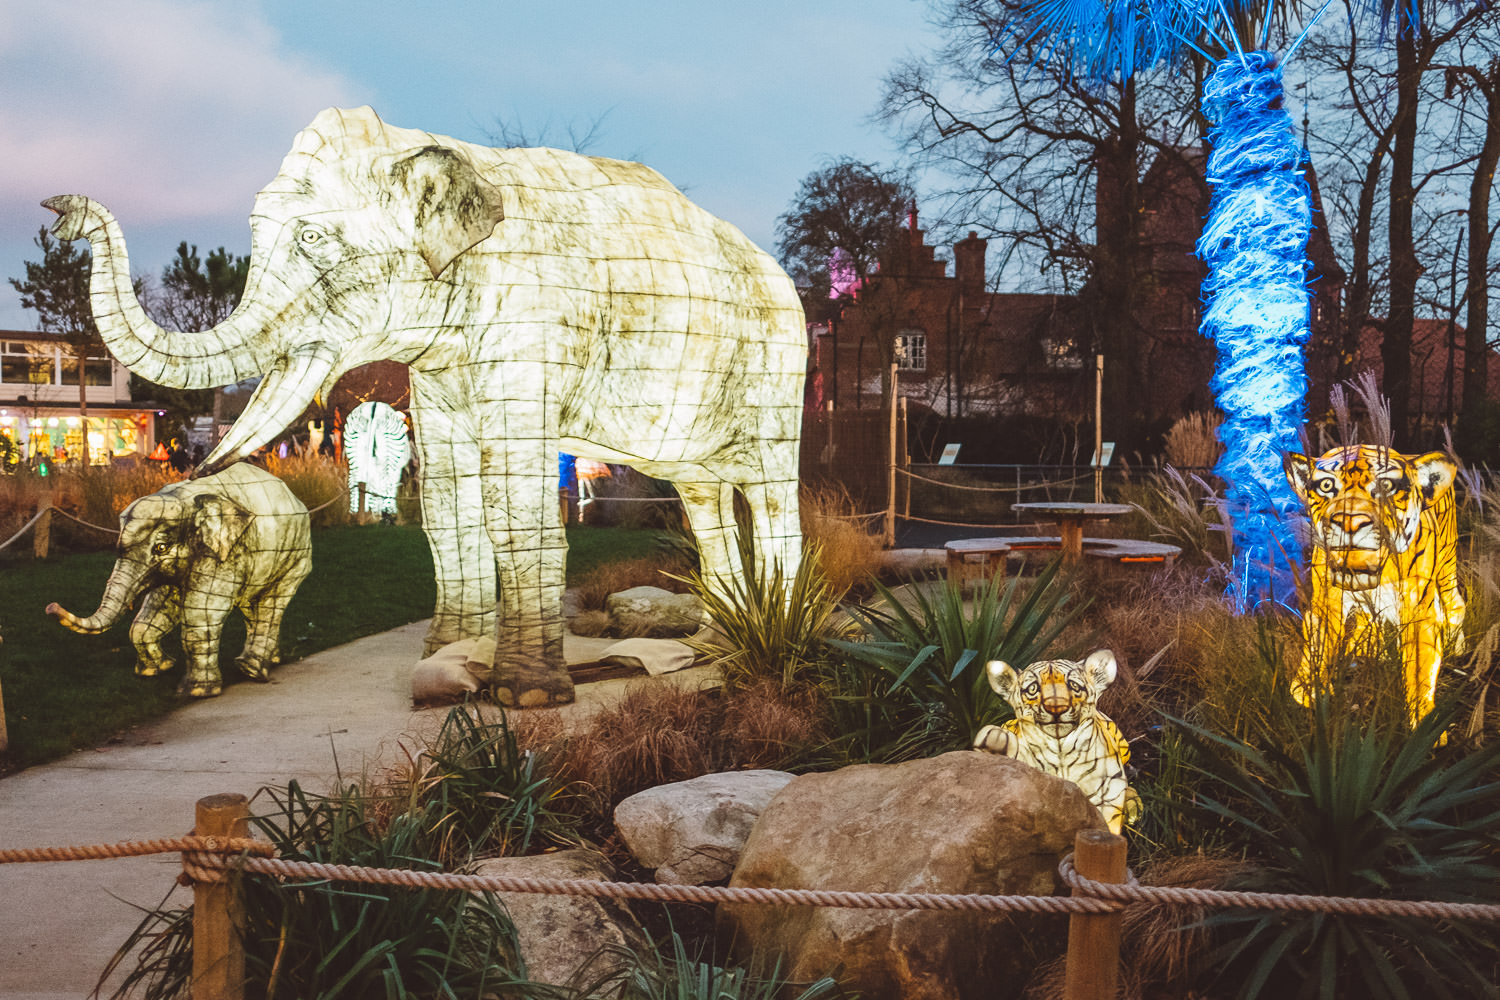 cocktail_saturdays_the_lanterns_at_chester_zoo-7794.jpg